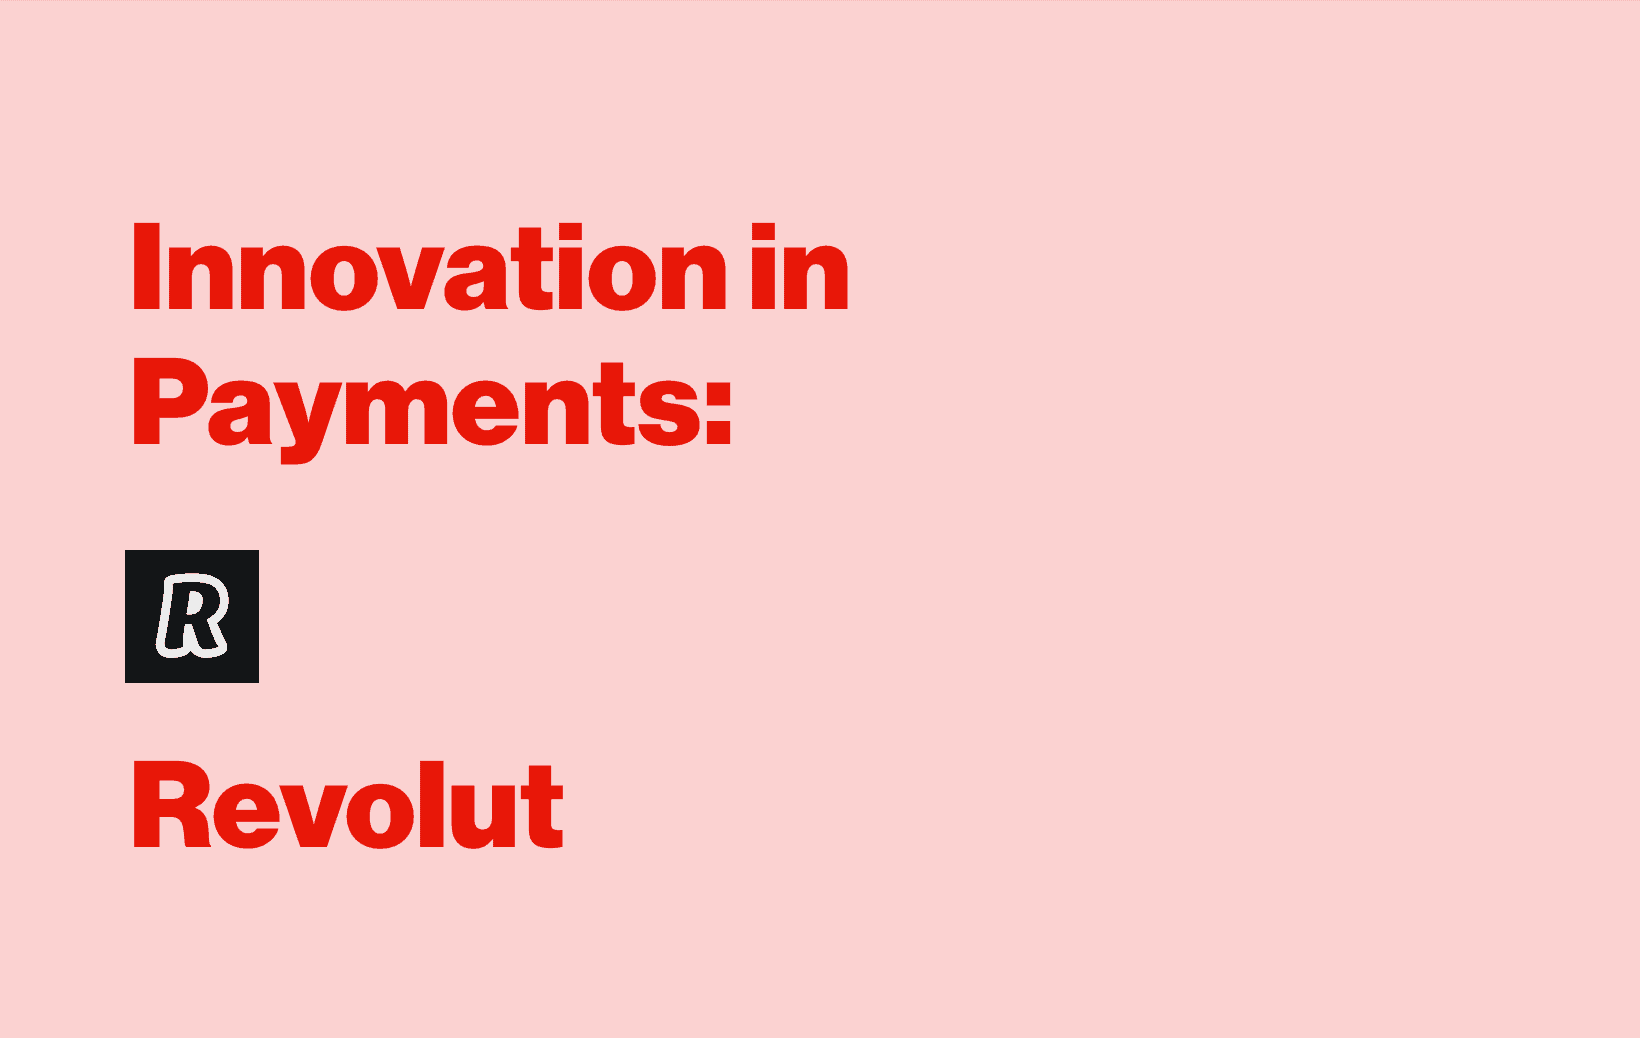 Innovation in Payments: Interview with Saud Aziz, Head of Strategy and Operations at Revolut